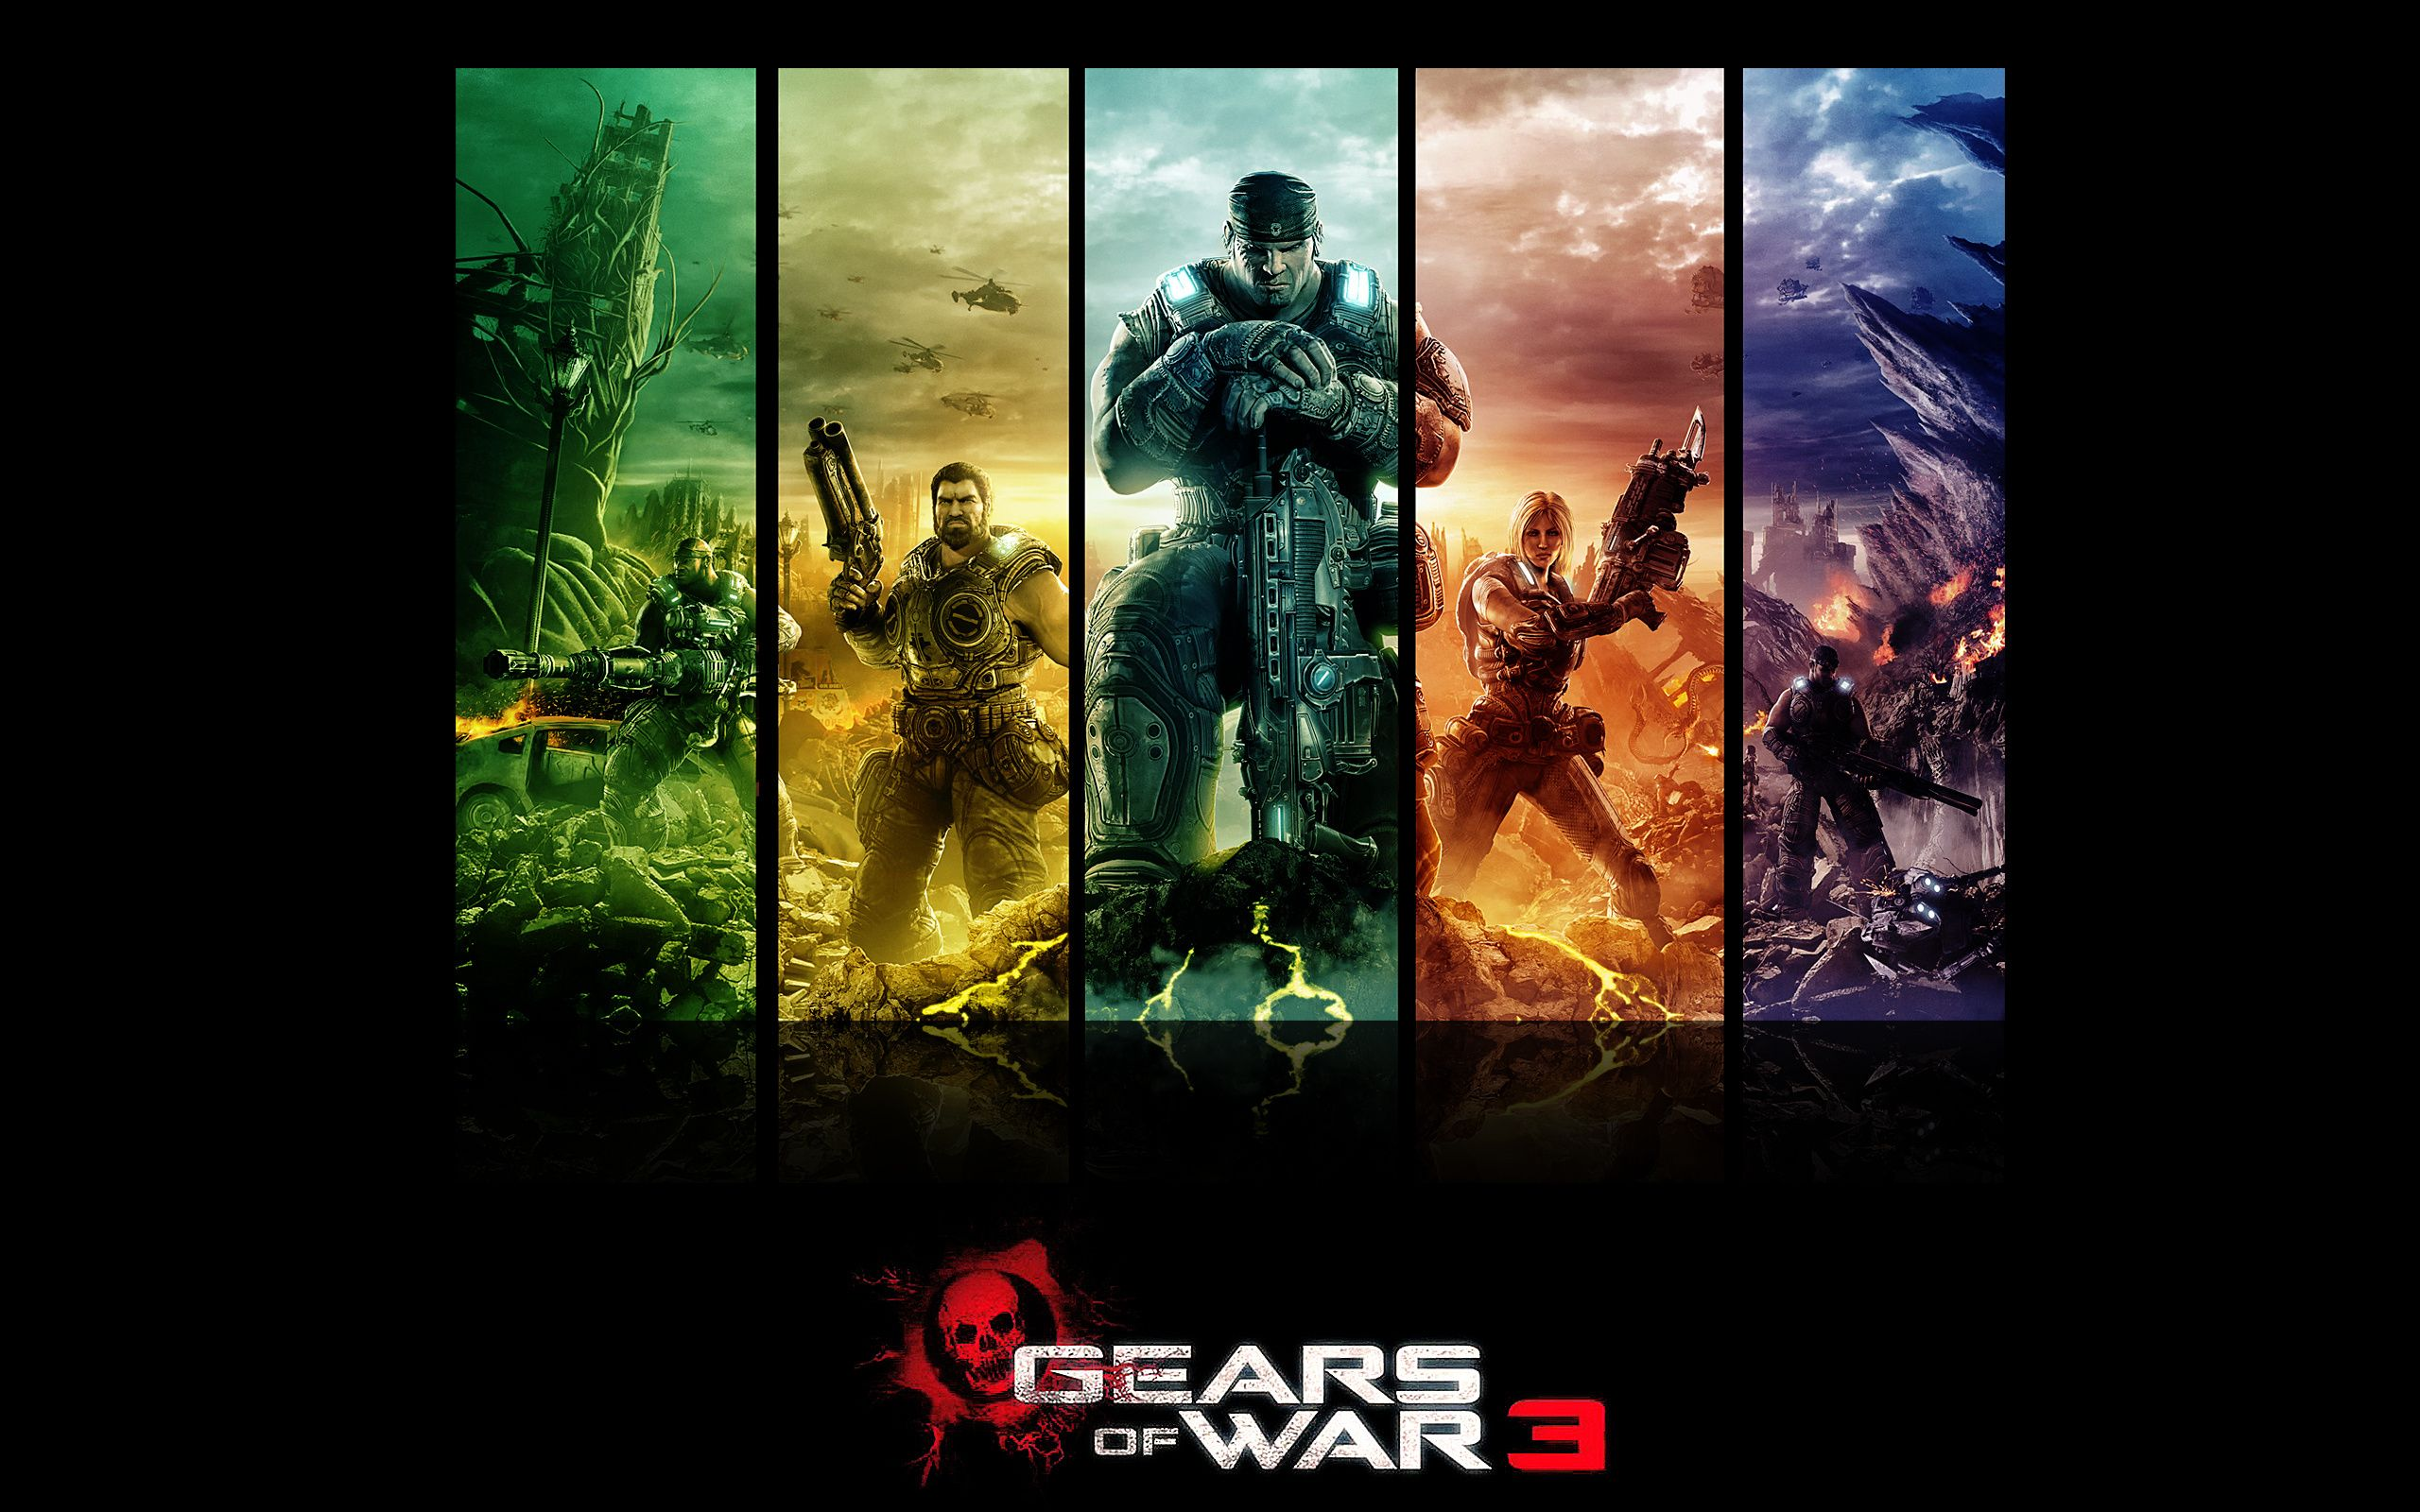 war games for pc free download windows 7